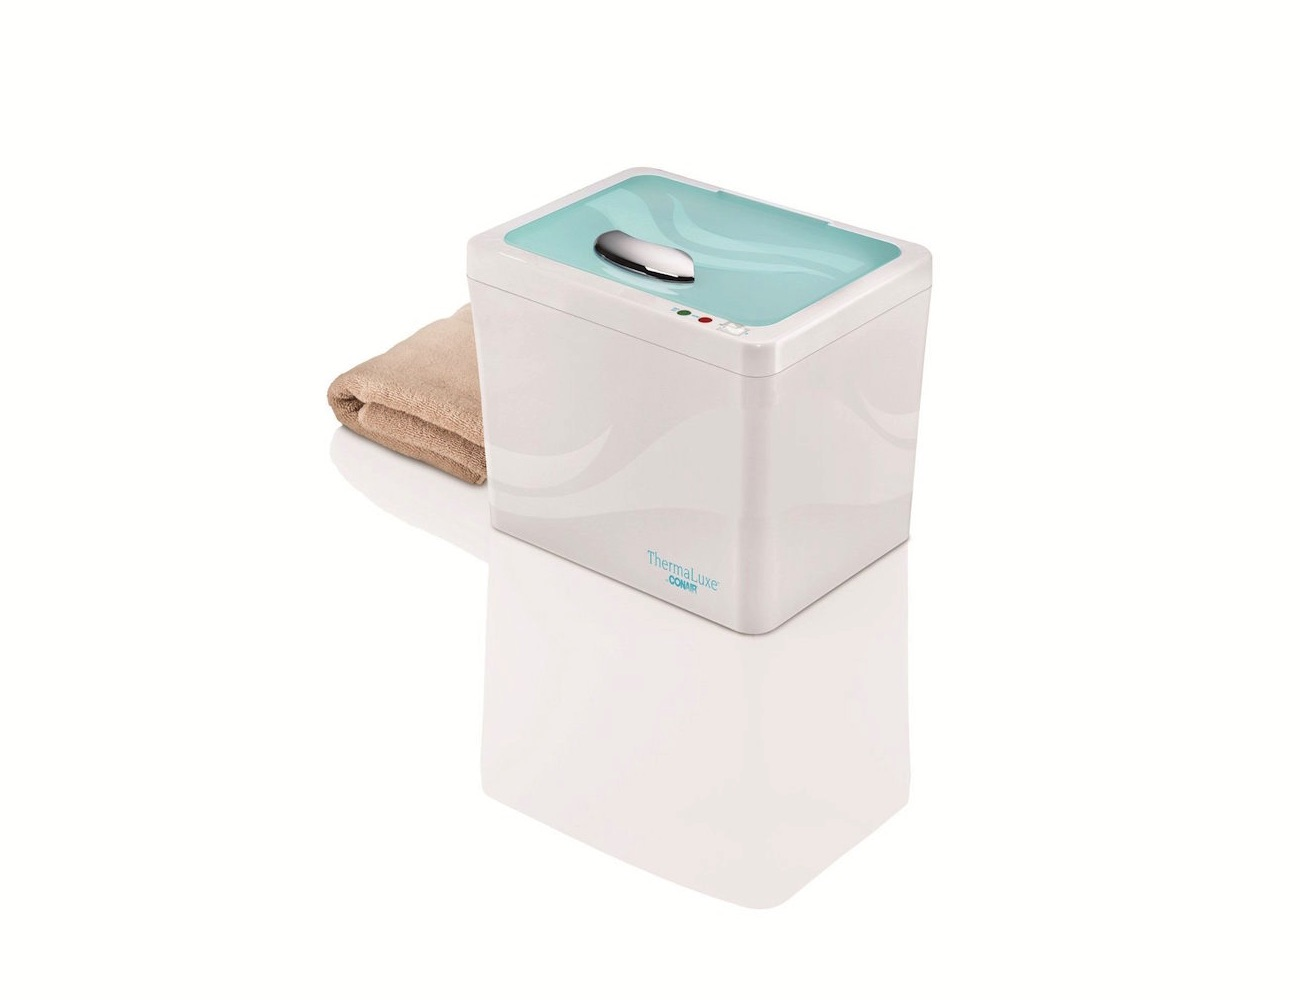 therma-luxe-towel-warmer-by-conair-home-03